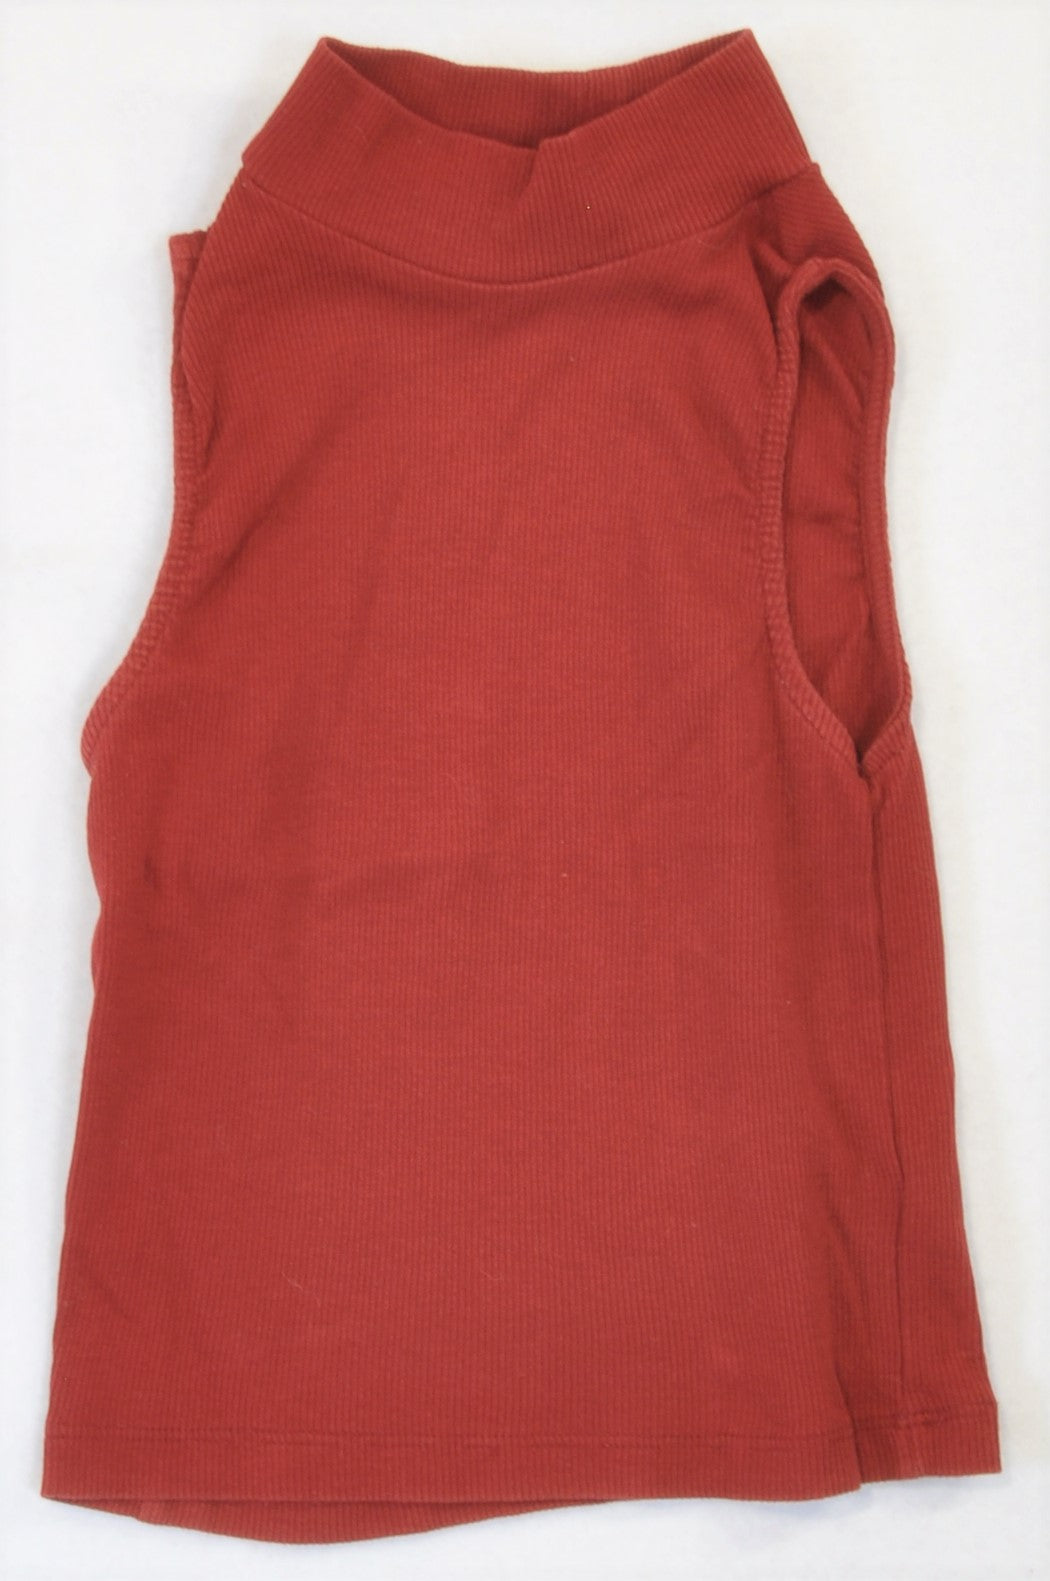 H&M Rust Ribbed Mock Neck Tank Top Women Size XS